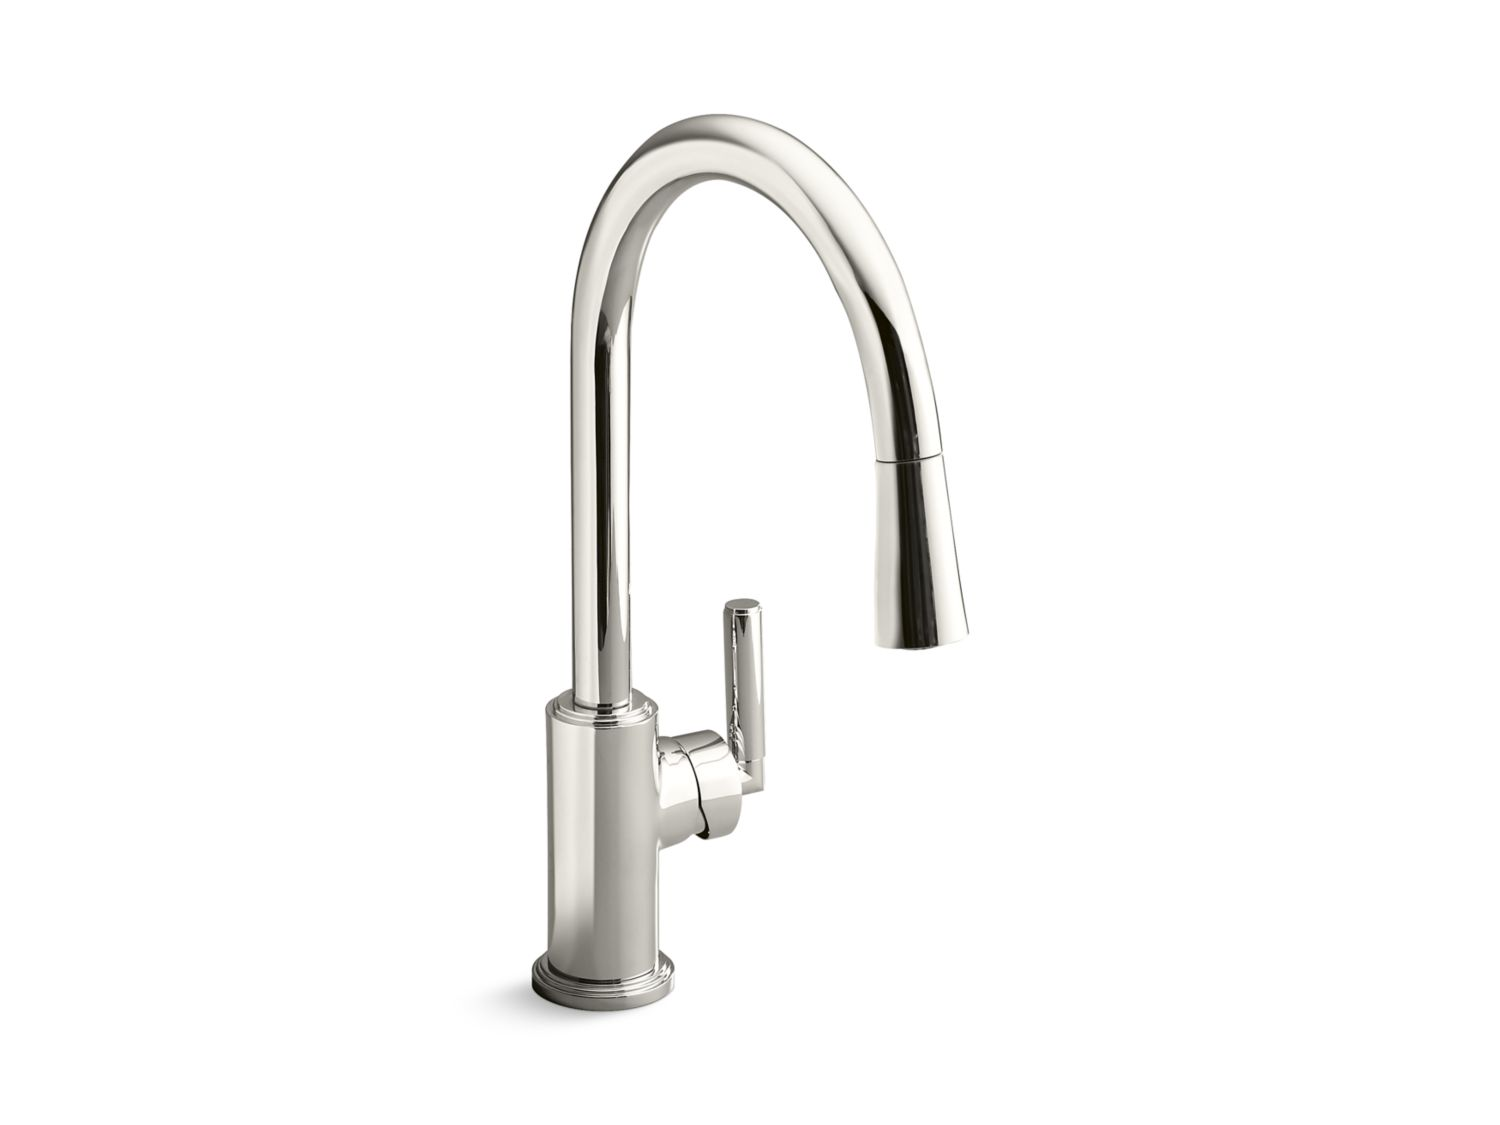 kallista kitchen faucets vir stil minimal by kirar pull kitchen faucet 12812